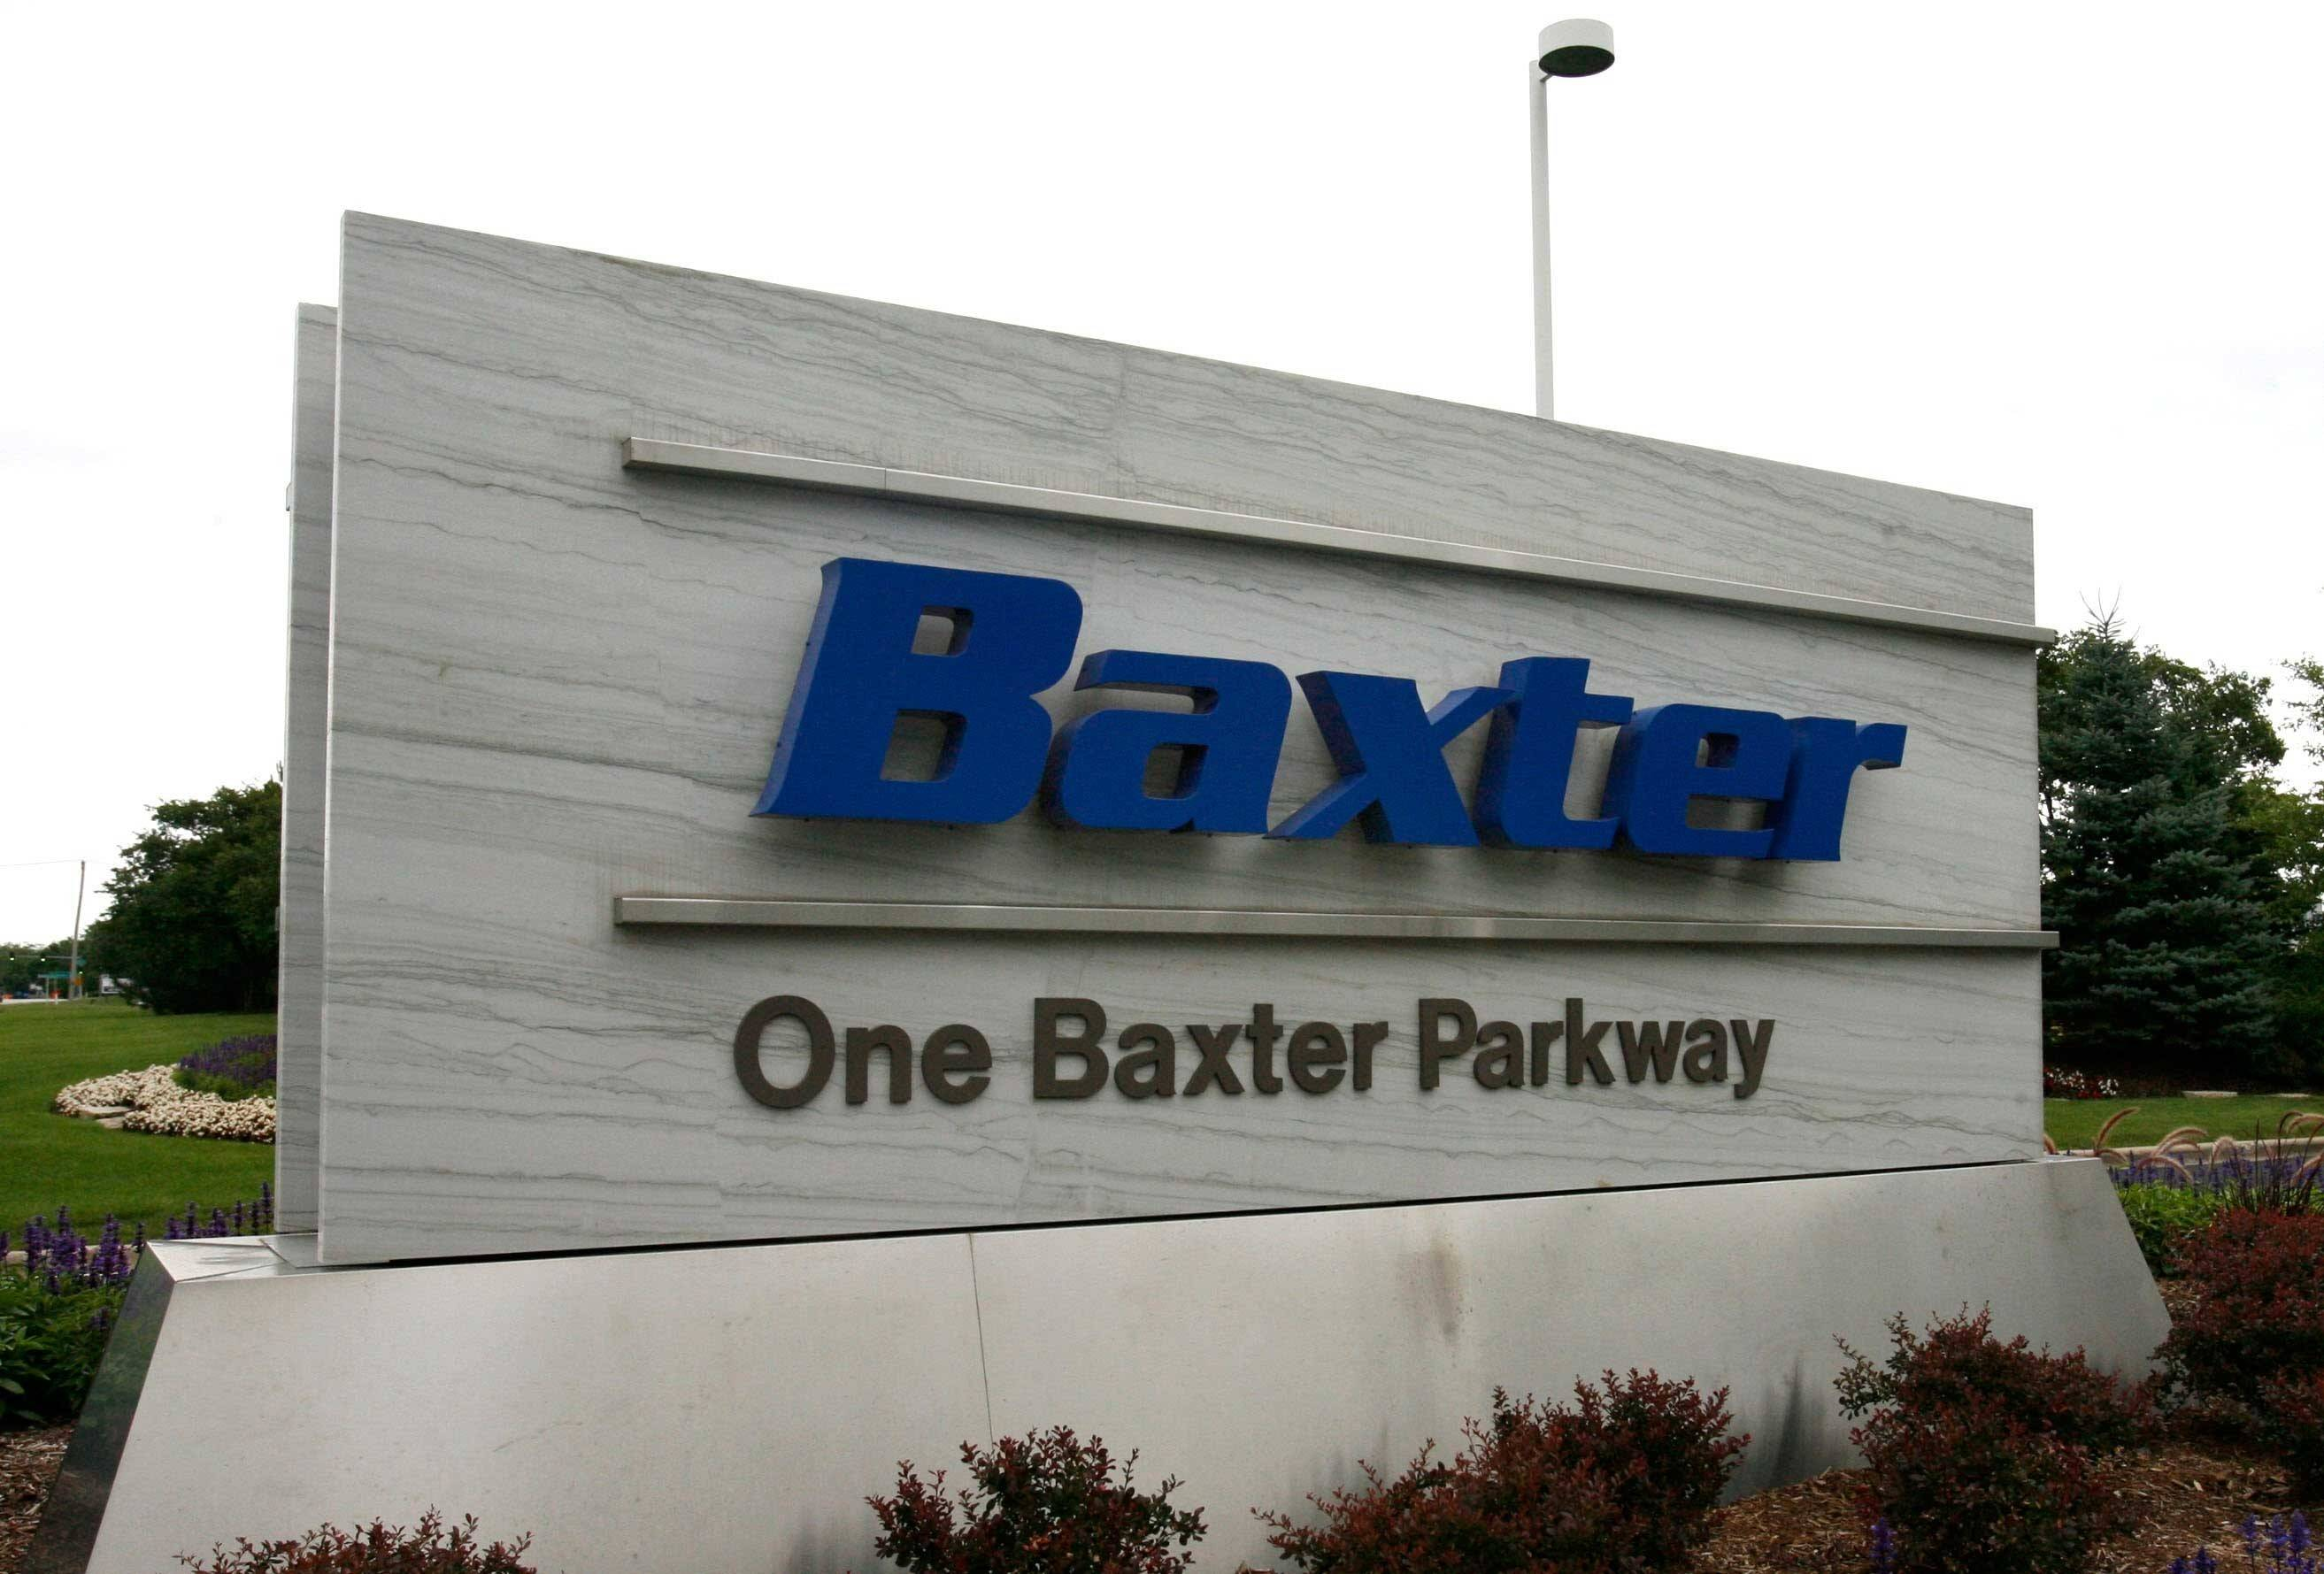 Deerfield-based Baxter International Inc. is splitting itself into two separate businesses — one focusing on biopharmaceuticals and the other on other medical products.